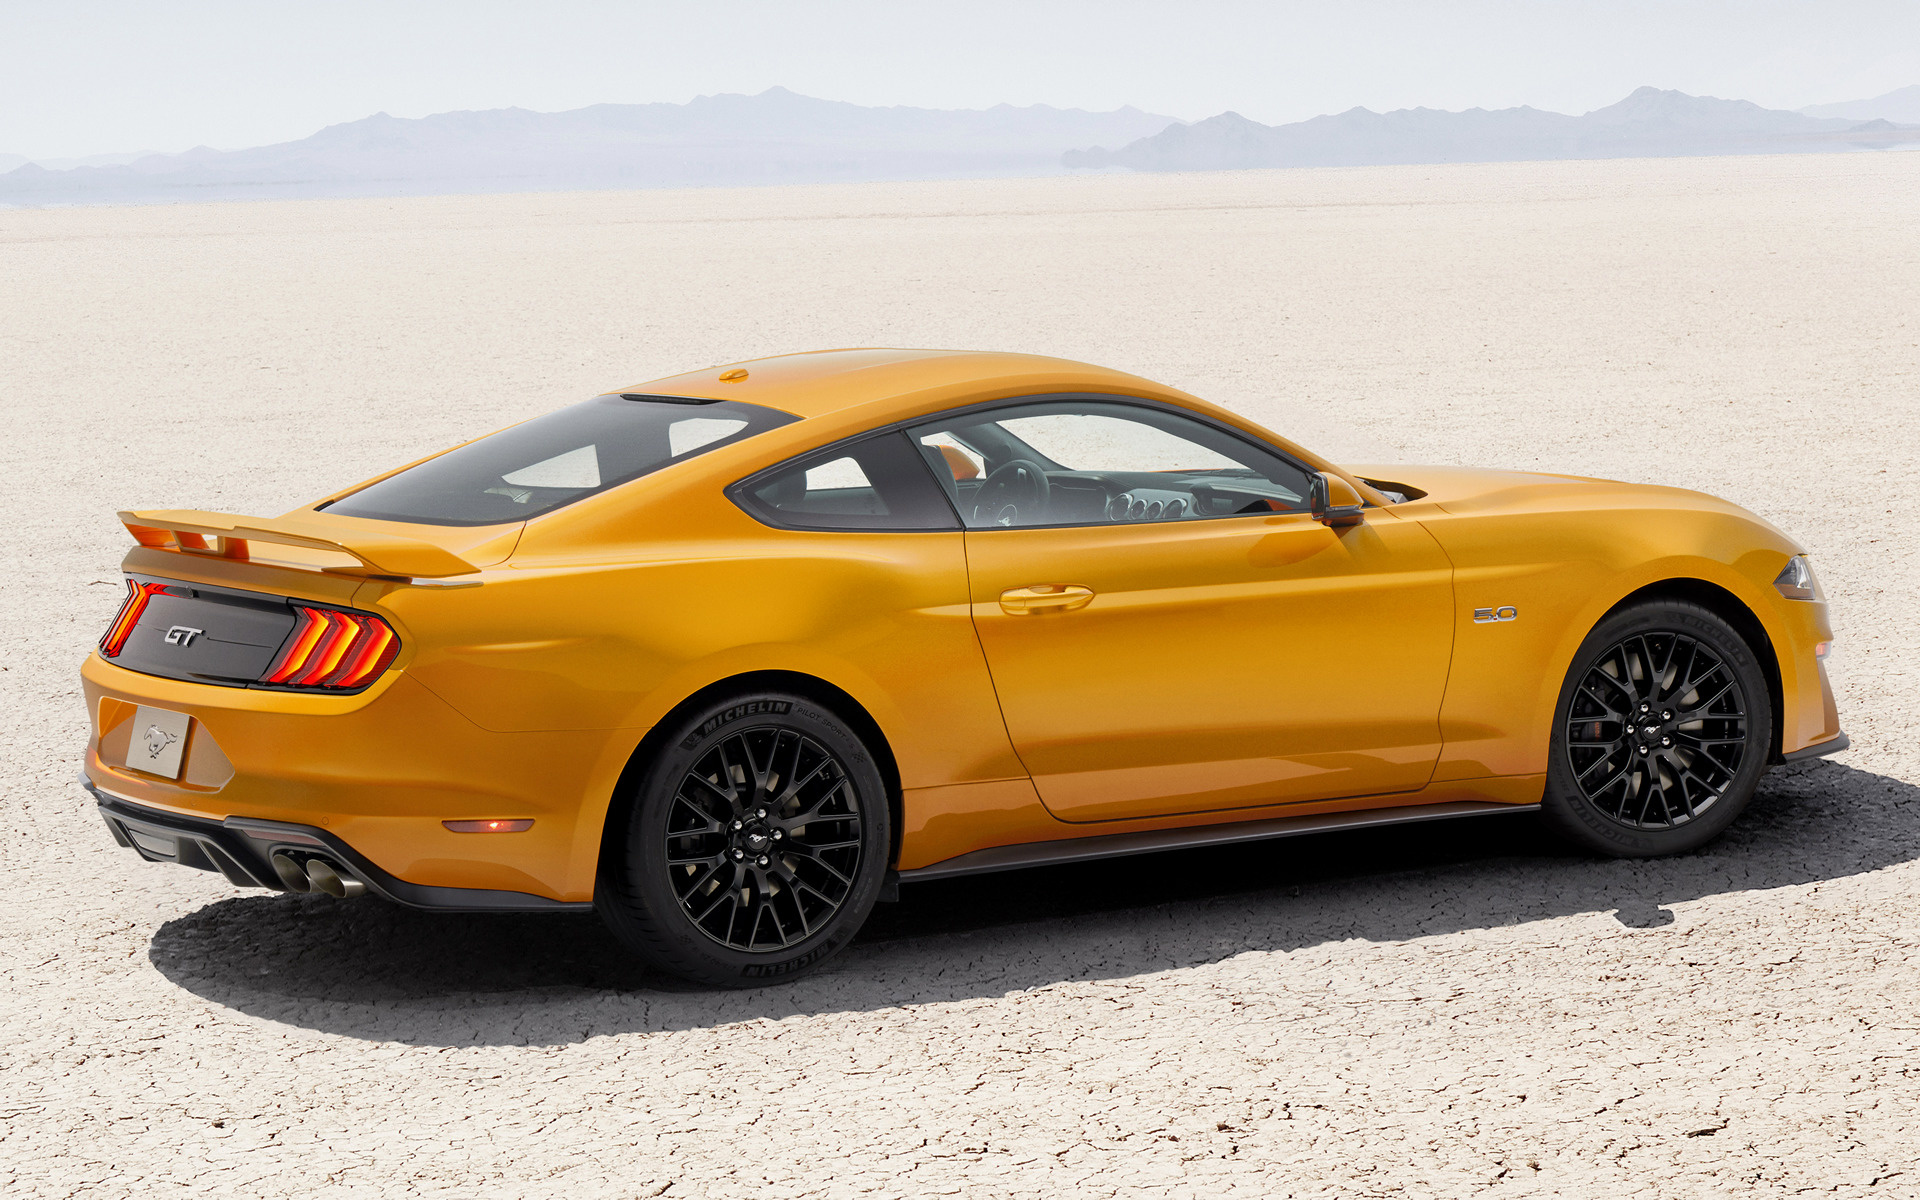 Ford Mustang GT (2018) Wallpapers and HD Images - Car Pixel